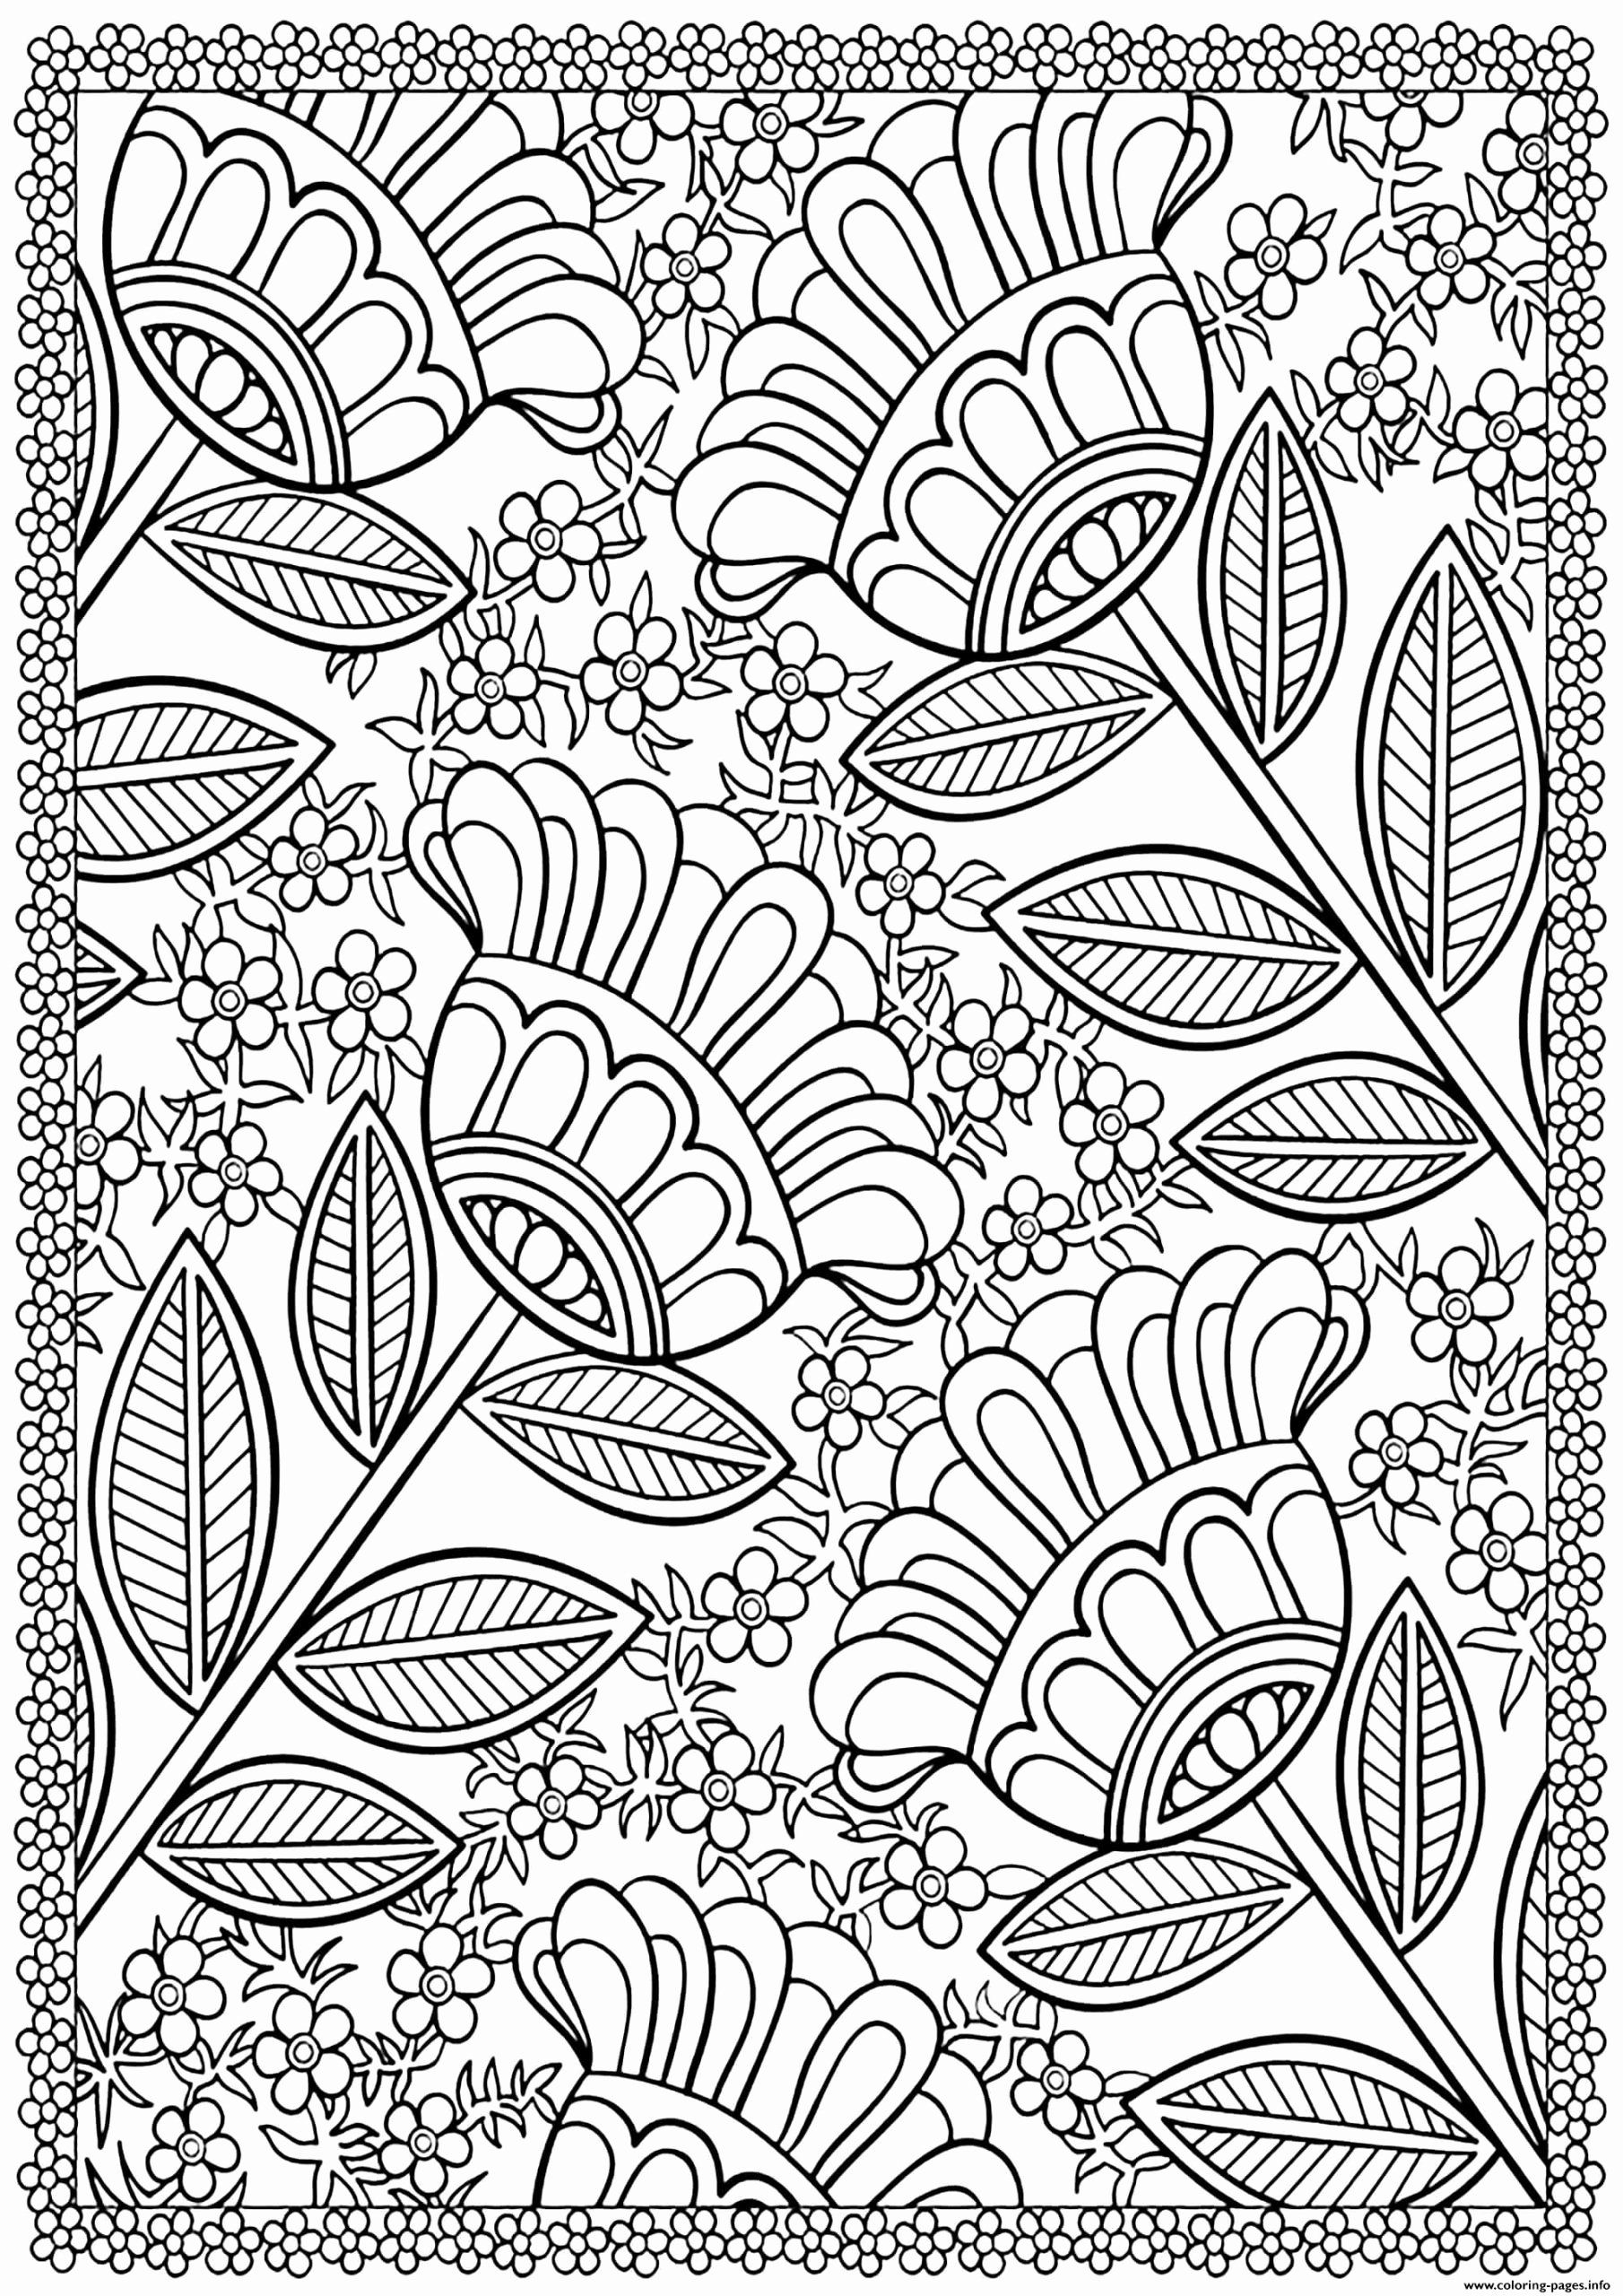 Big Coloring Pages For Adults Unique Coloring Pages Floral Coloring Pages For Ad In 2020 Printable Flower Coloring Pages Designs Coloring Books Abstract Coloring Pages